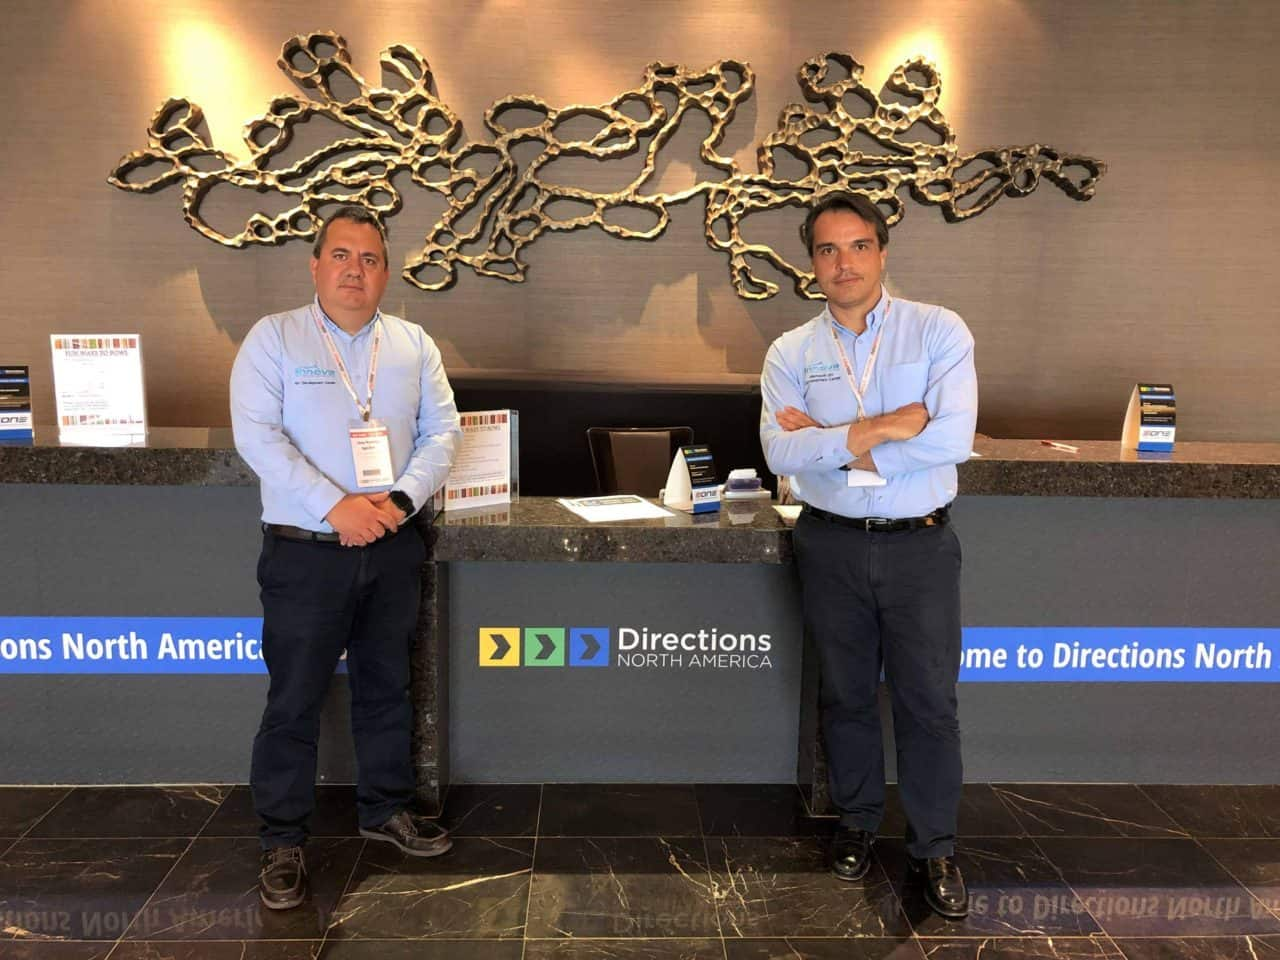 Estamos en Directions North America 2019